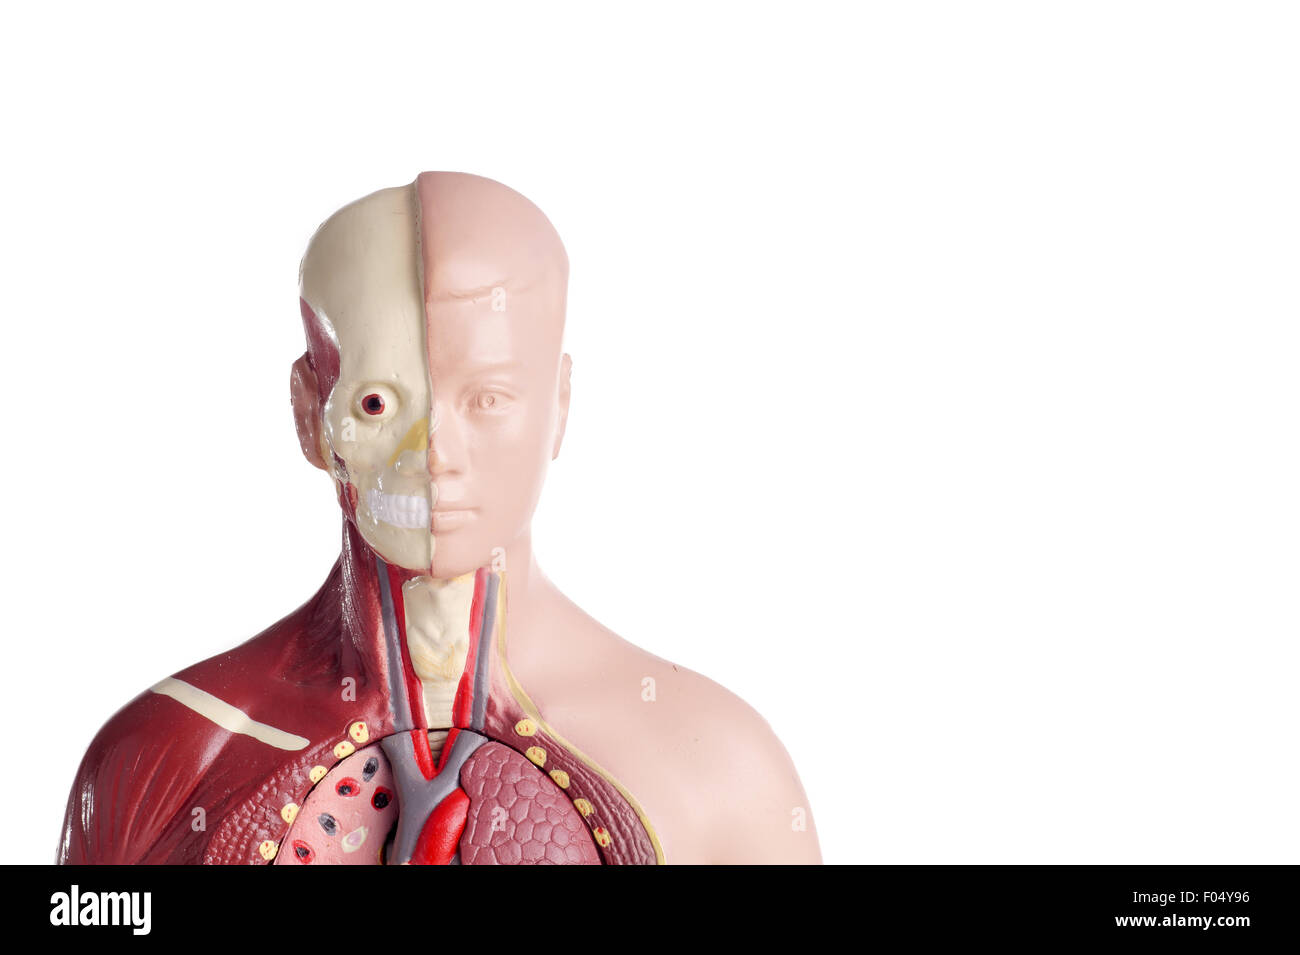 Human Anatomy Model Used For Teaching Students And Patients About